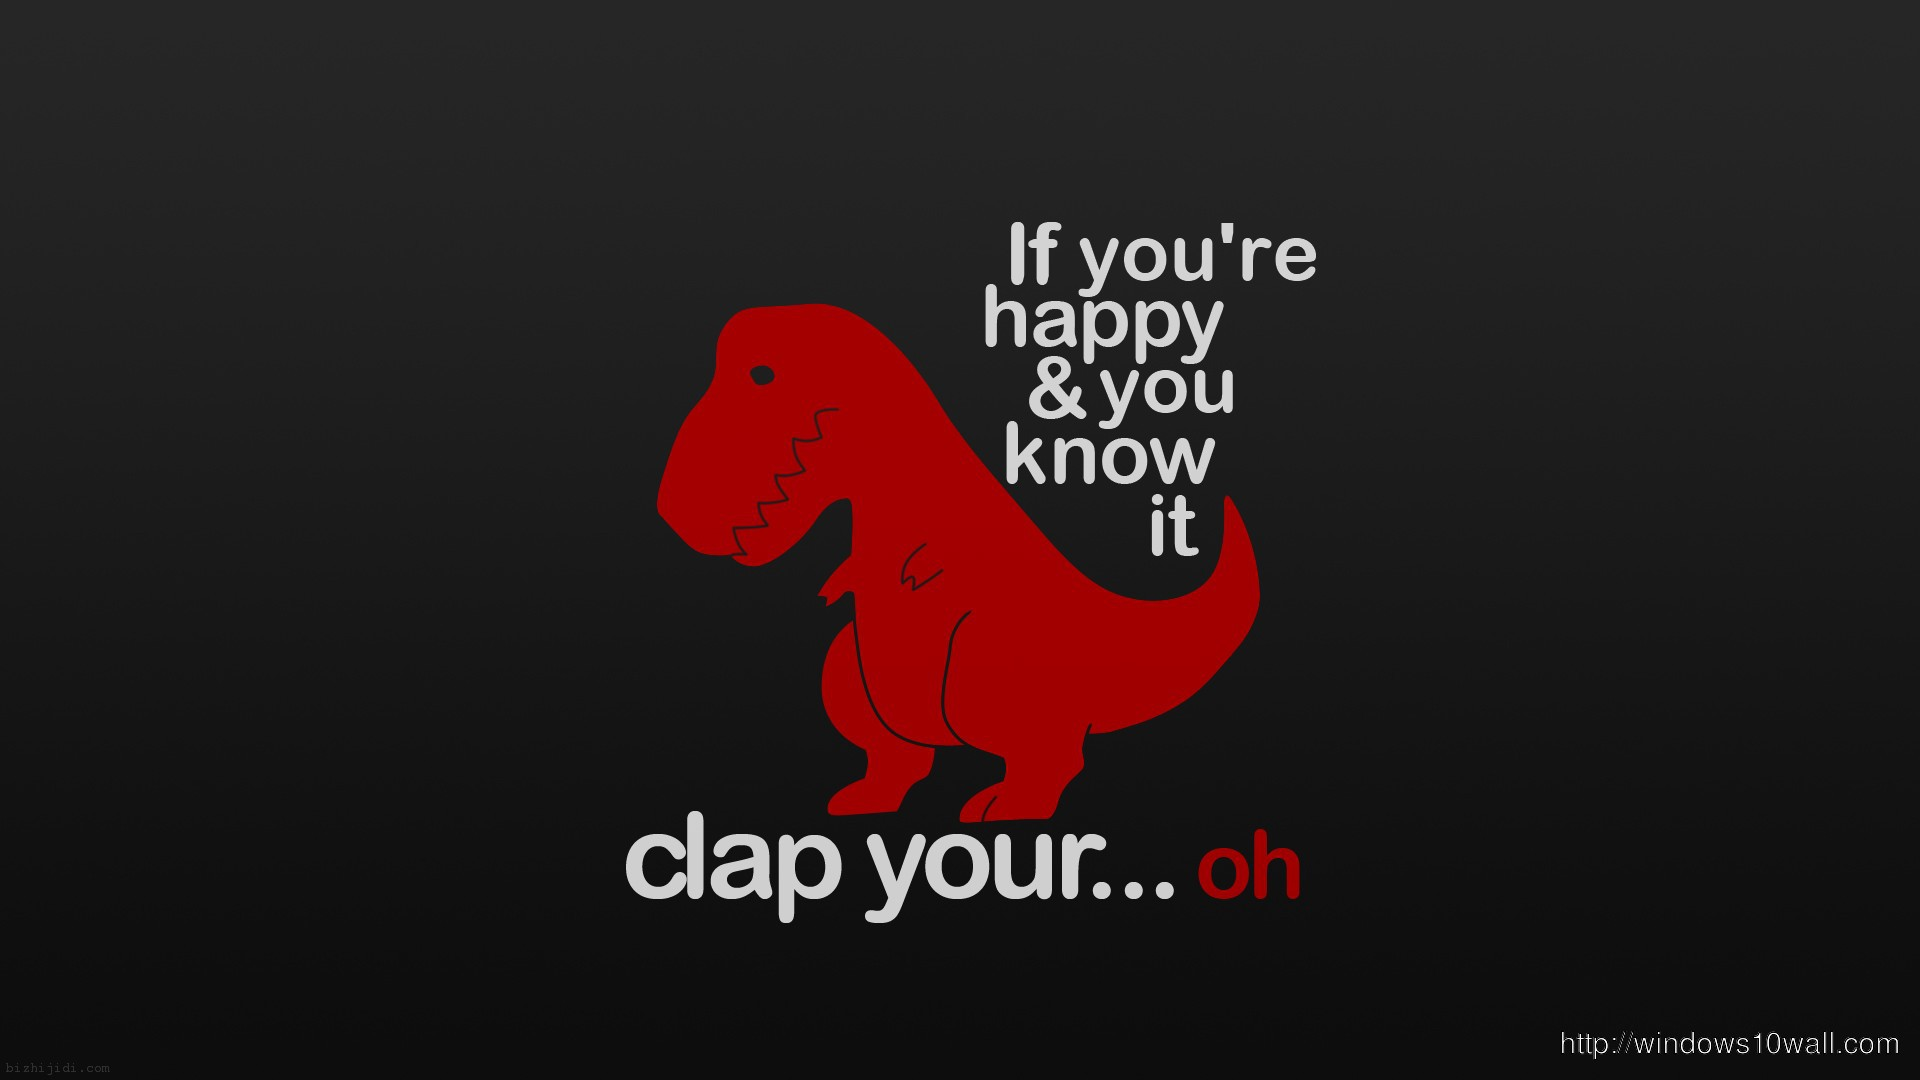 Funny Quotes Hd Wallpaper 2013 Windows 10 Wallpapers